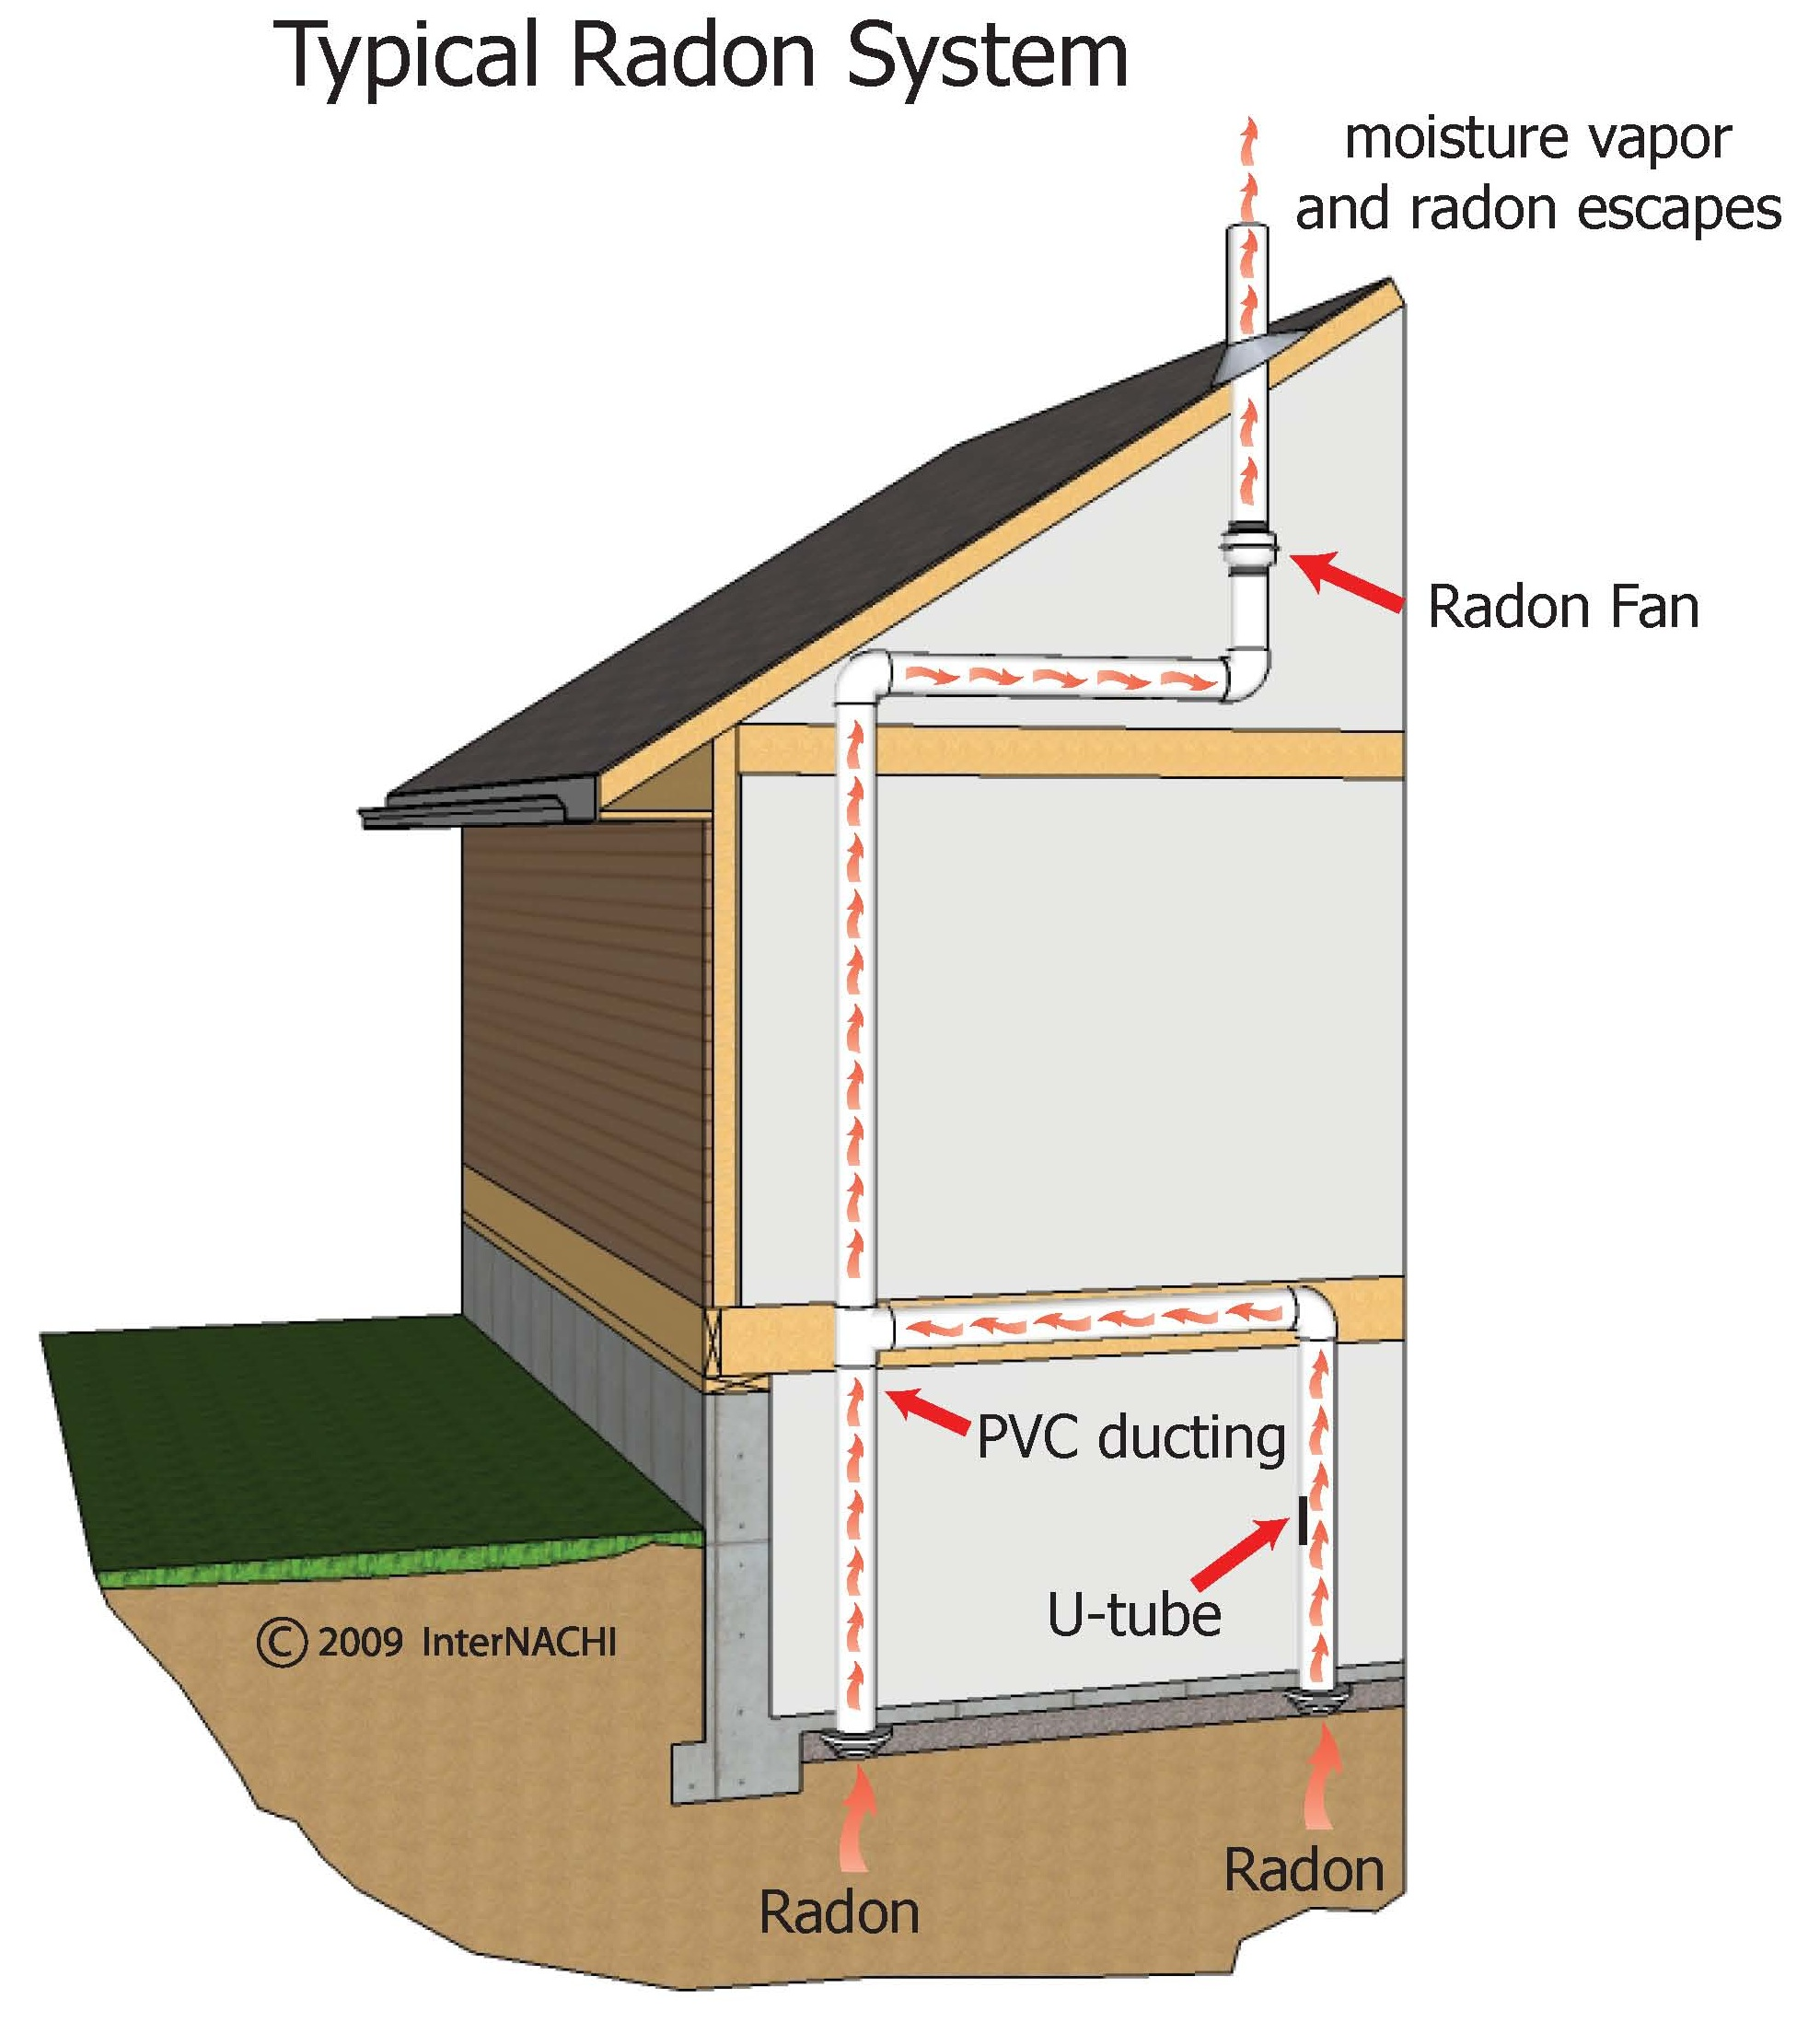 Radon radon test homeguard inspections™ greater wasatch front radian diagram at edmiracle.co